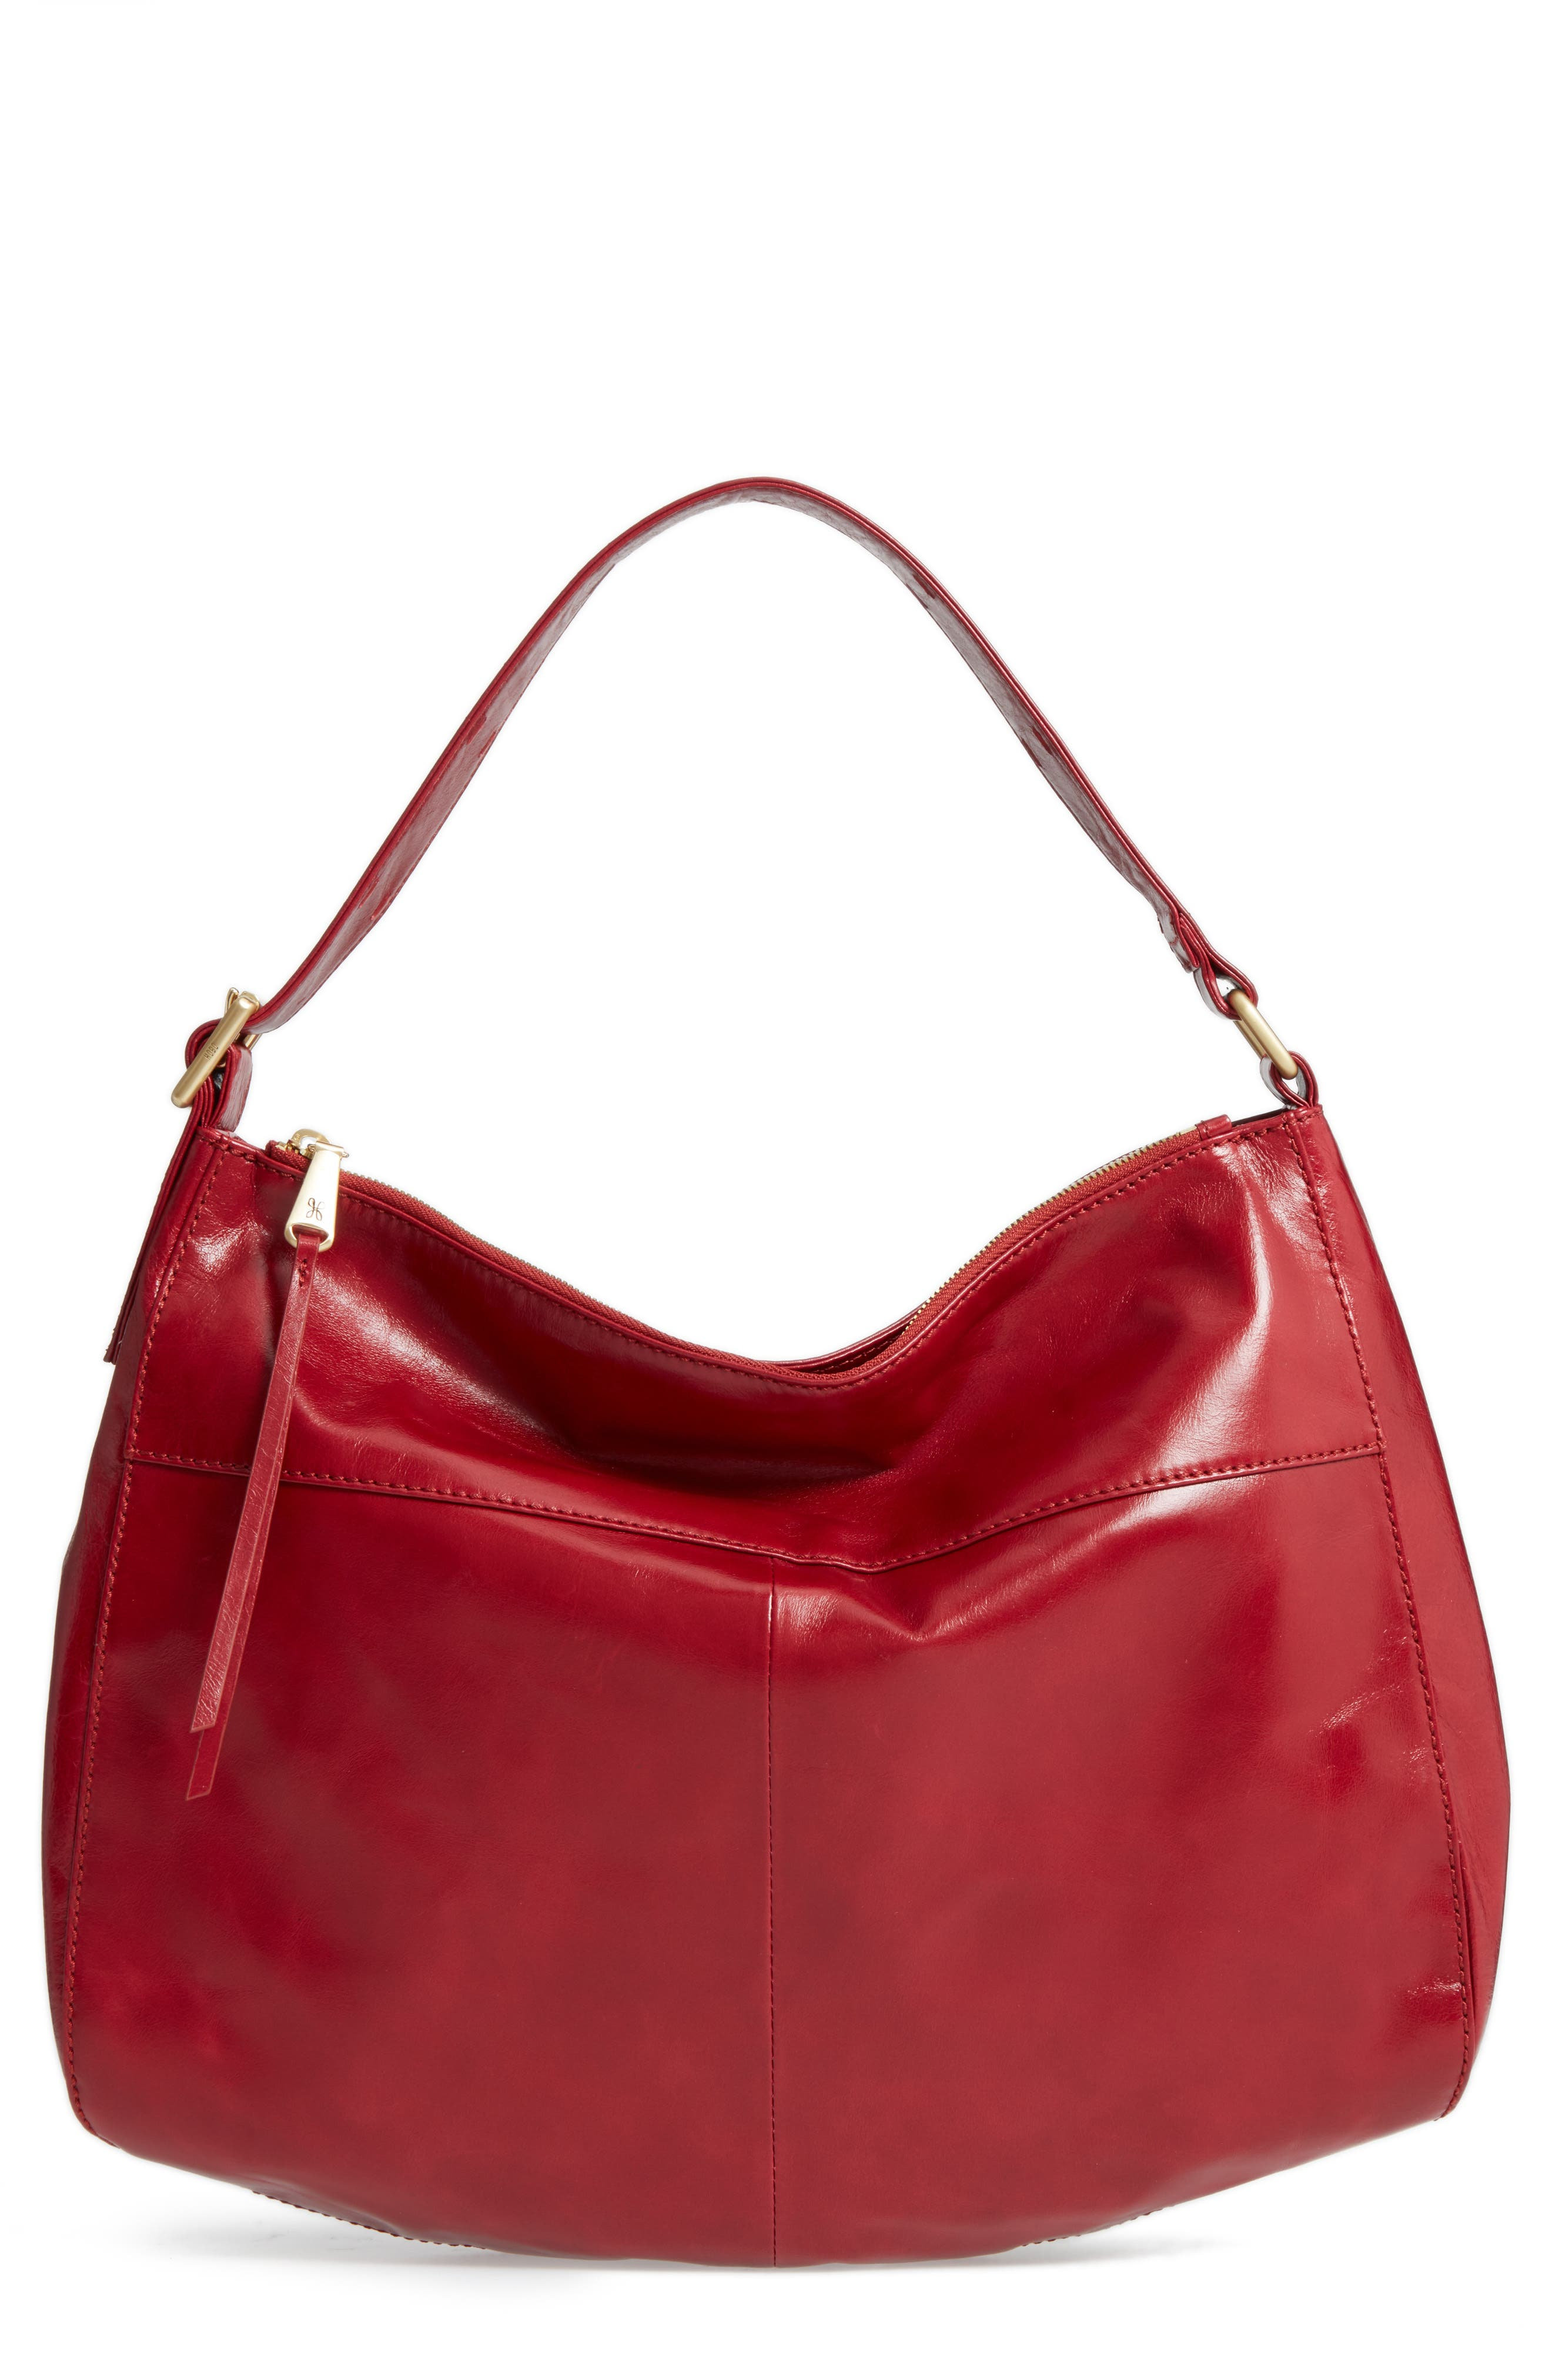 Hobo 'Quincy' Leather Hobo